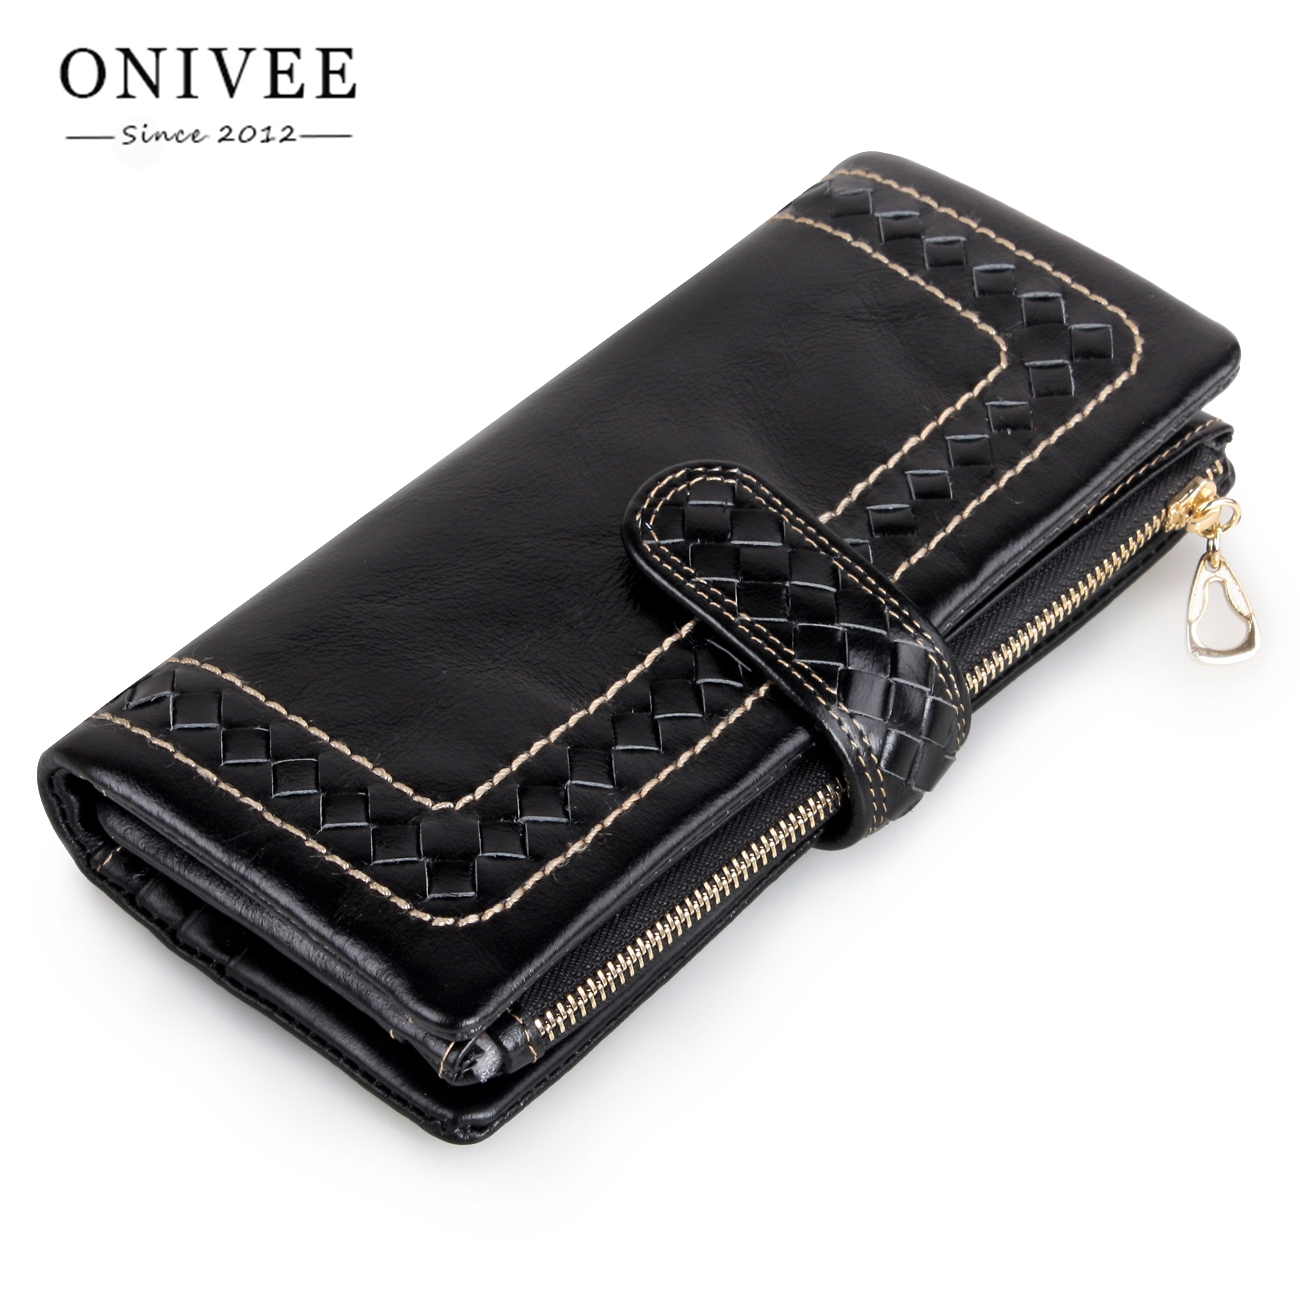 ONIVEE Leather Women Wallet Female Long Walet Women Lady Clutch Money Bag Coin Purse Portomonee Handy Small Mini Vallet 2058 new design fashion leather women lady purse long burgundy wine red coin case cell mobile iphone handy clutch bag wallet quality